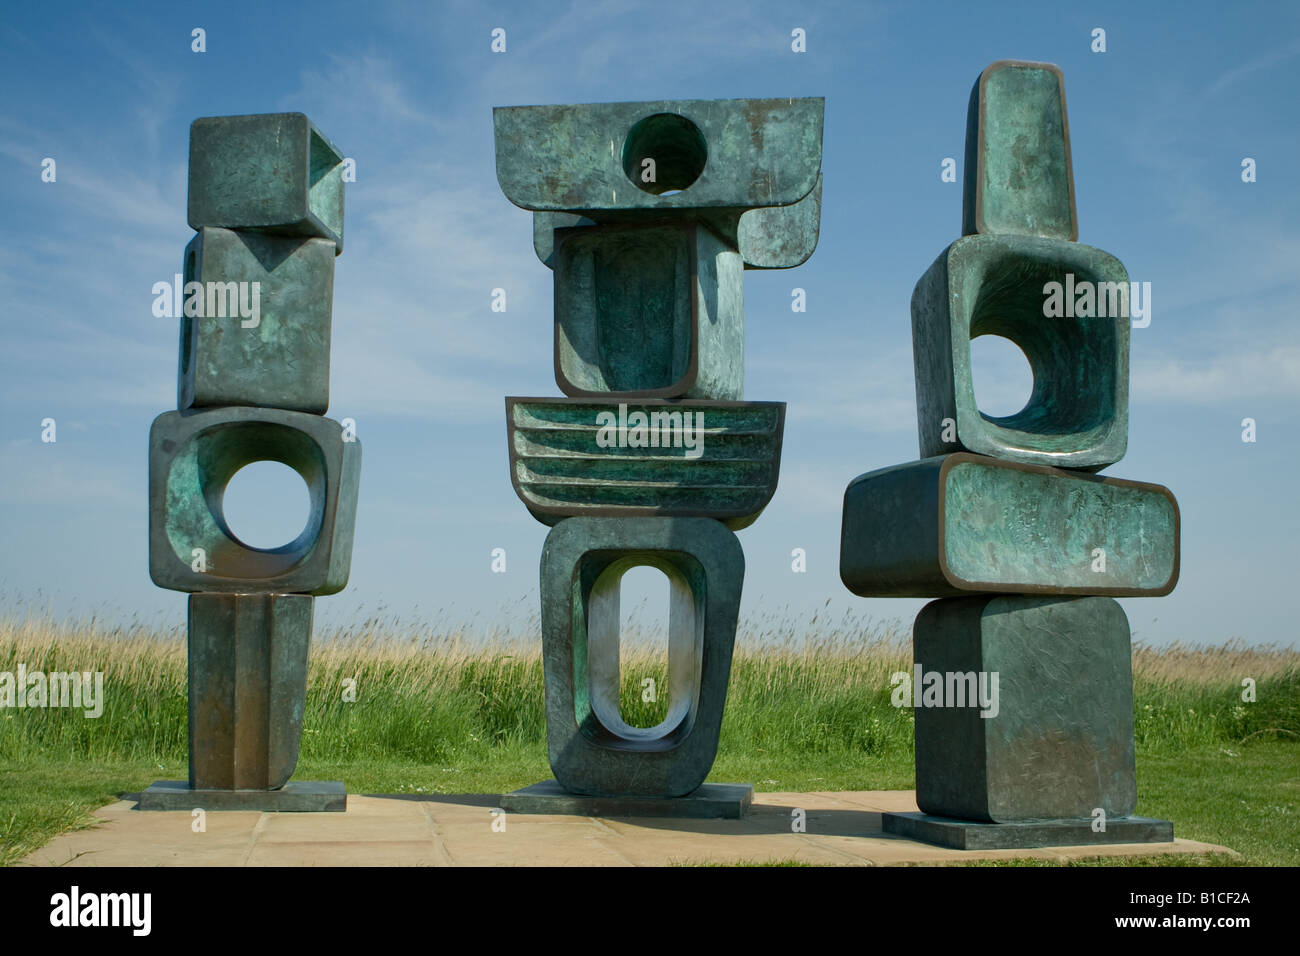 Sculptures by Barbara Hepworth at Snape Maltings near Aldeburgh Suffolk - Stock Image